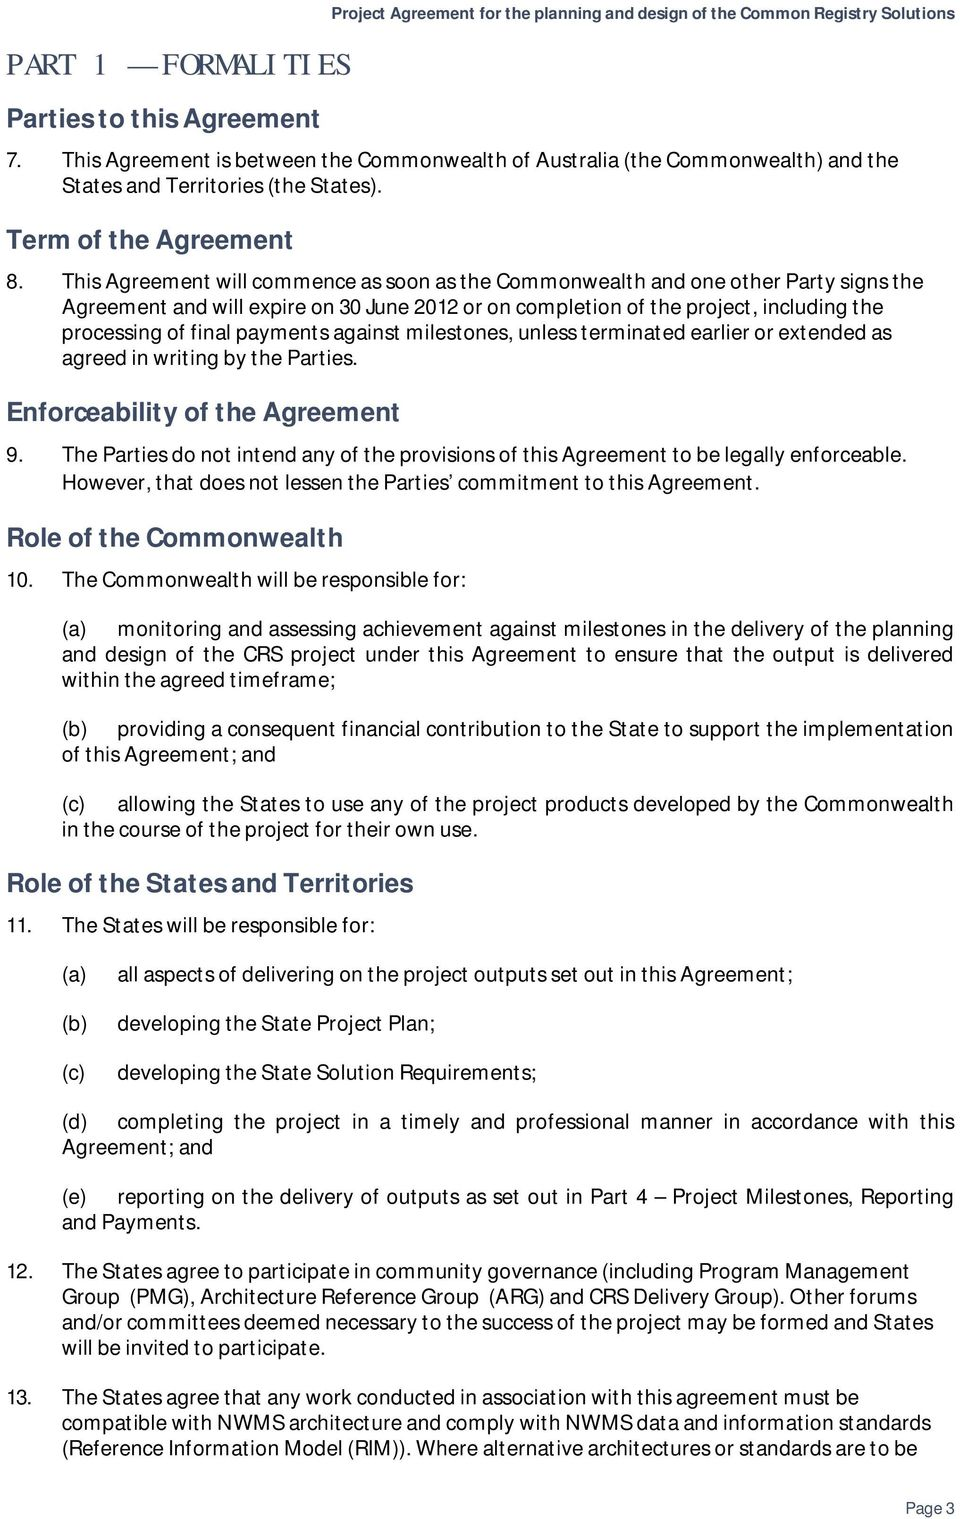 This Agreement will commence as soon as the Commonwealth and one other Party signs the Agreement and will expire on 30 June 2012 or on completion of the project, including the processing of final